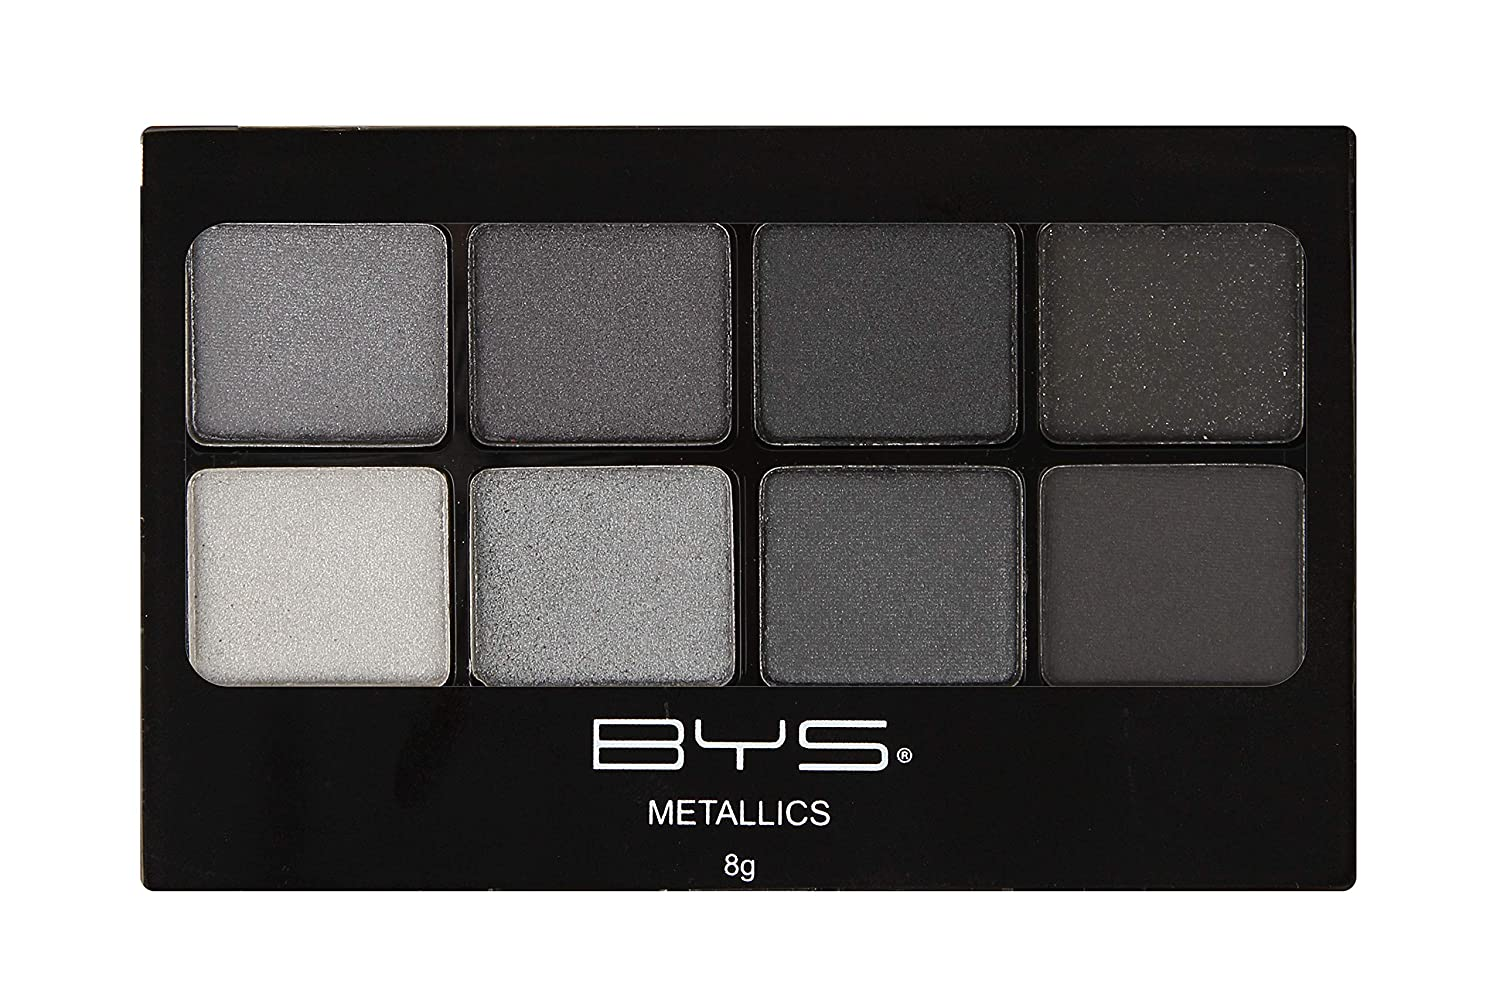 BYS Eyeshadow Makeup Palette 8 Shades - Matte Neutrals